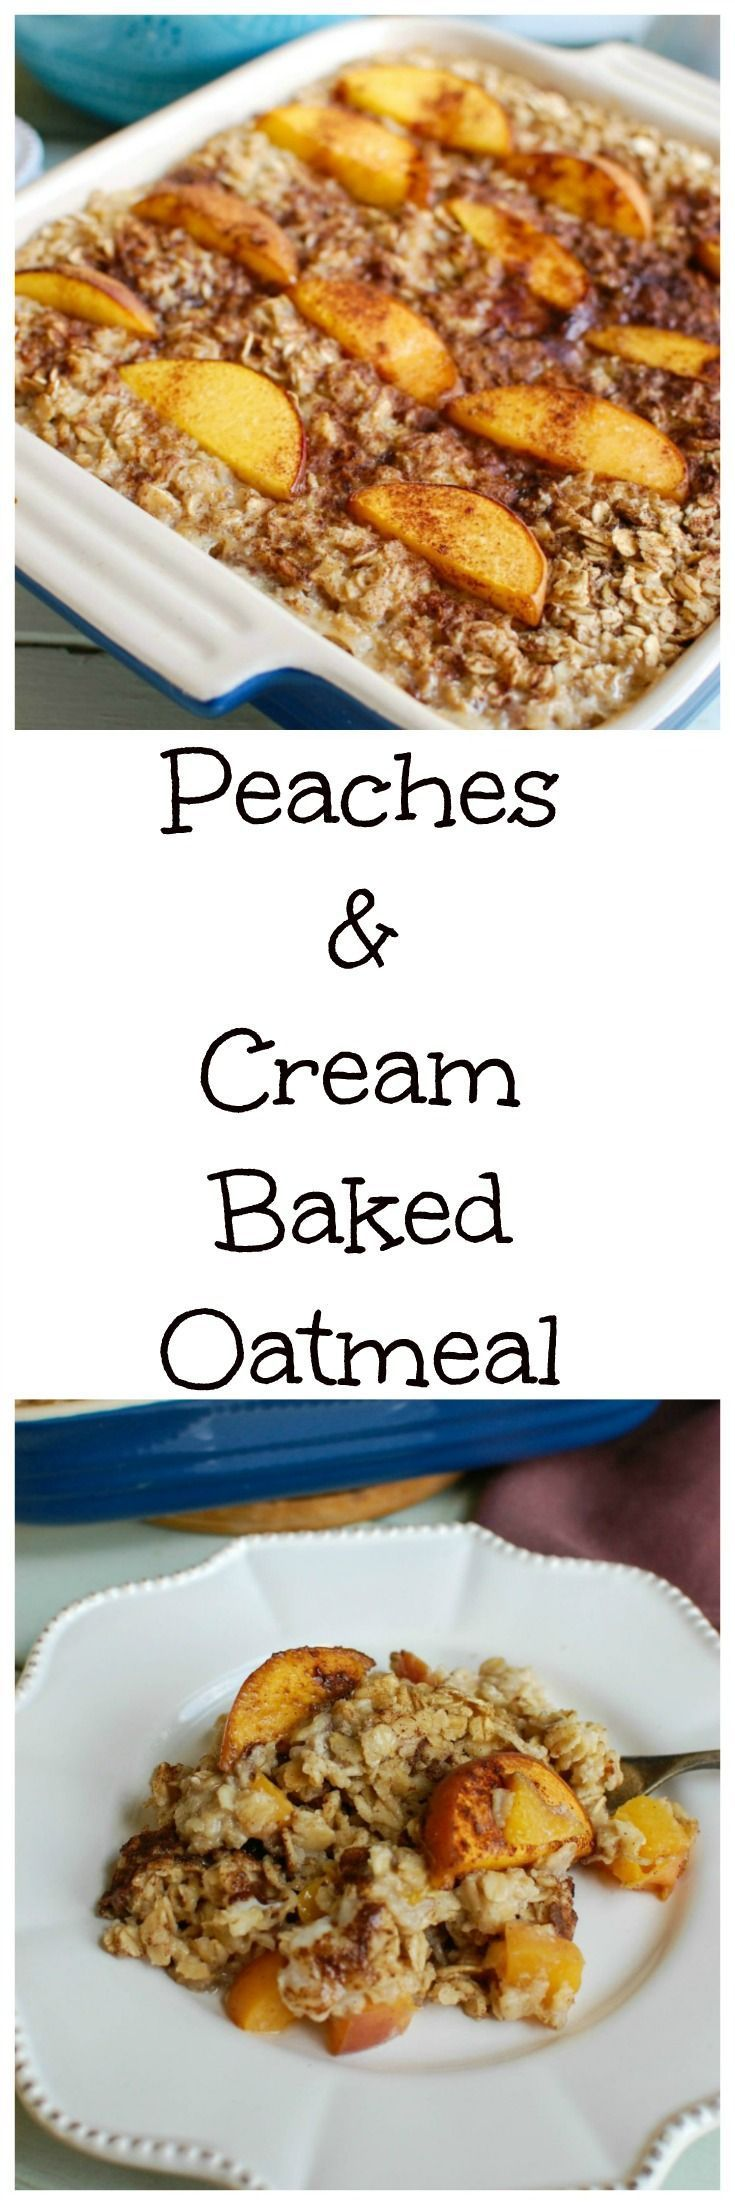 and Cream Baked Oatmeal Peaches and Cream Baked Oatmeal mixes oats and sweet peaches that are baked together in this hearty and comforting breakfast dish.   You can substitute other fruits for the peaches–like bananas or berries.  Serve it alone, or top it with milk or Greek yogurt. // A Cedar SpoonPeaches and Cream Baked Oatmeal mixes oats an...